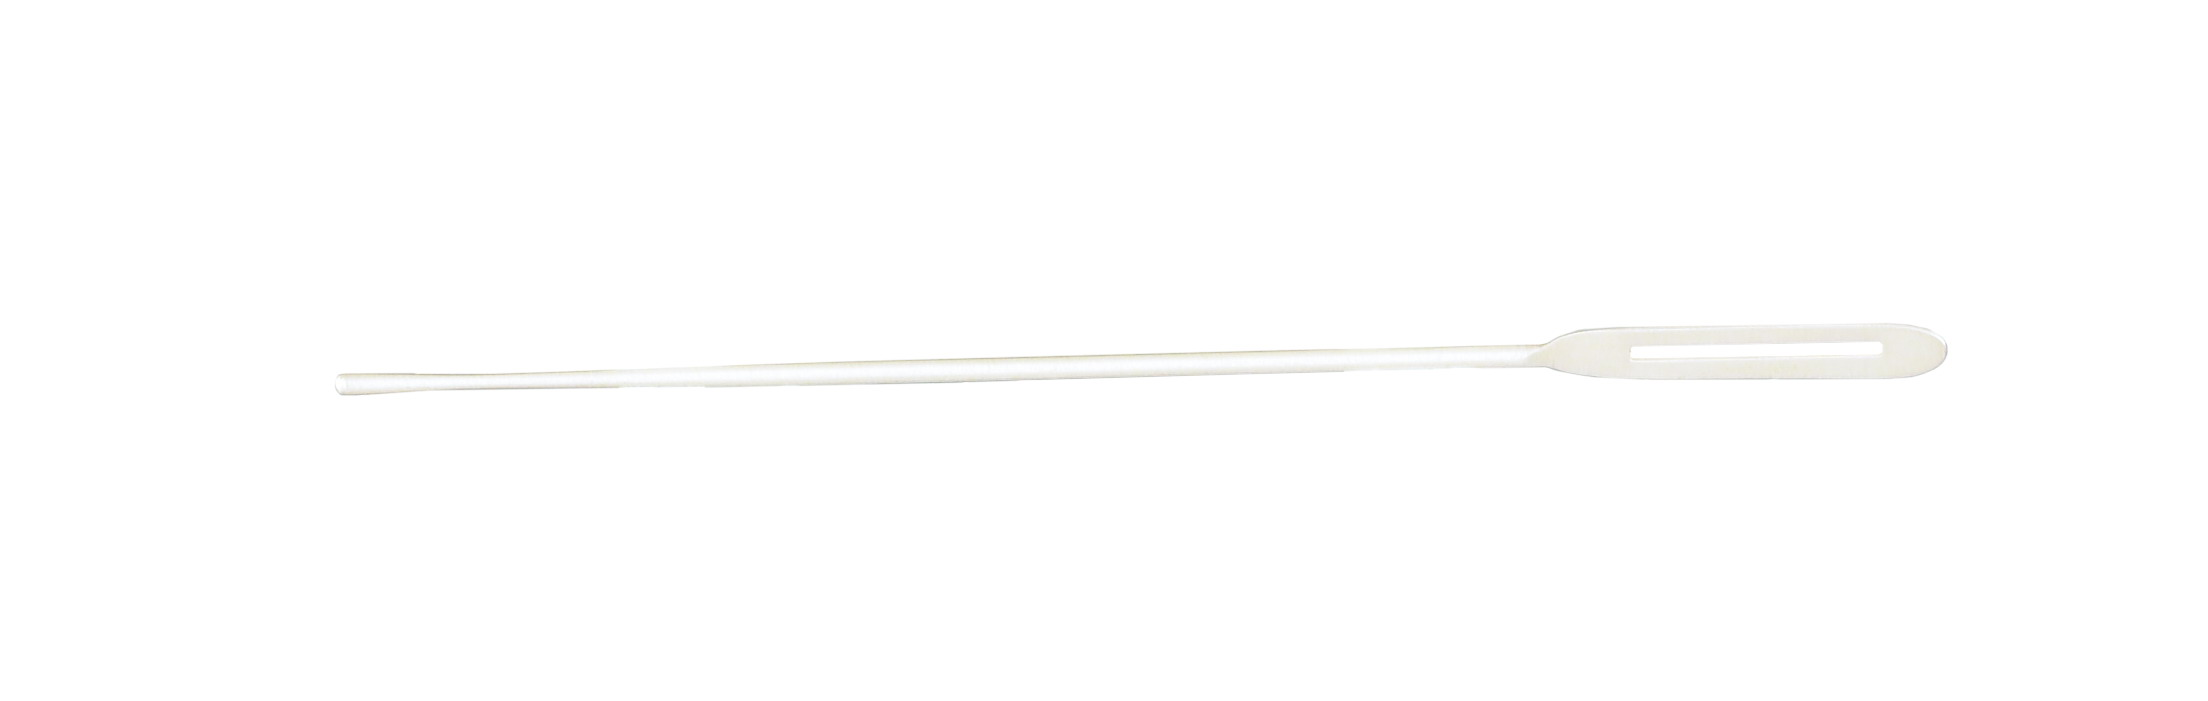 miltex-probes-with-eye-malleable-4-1-2-114-cm-sterling-10-22-st-miltex.jpg